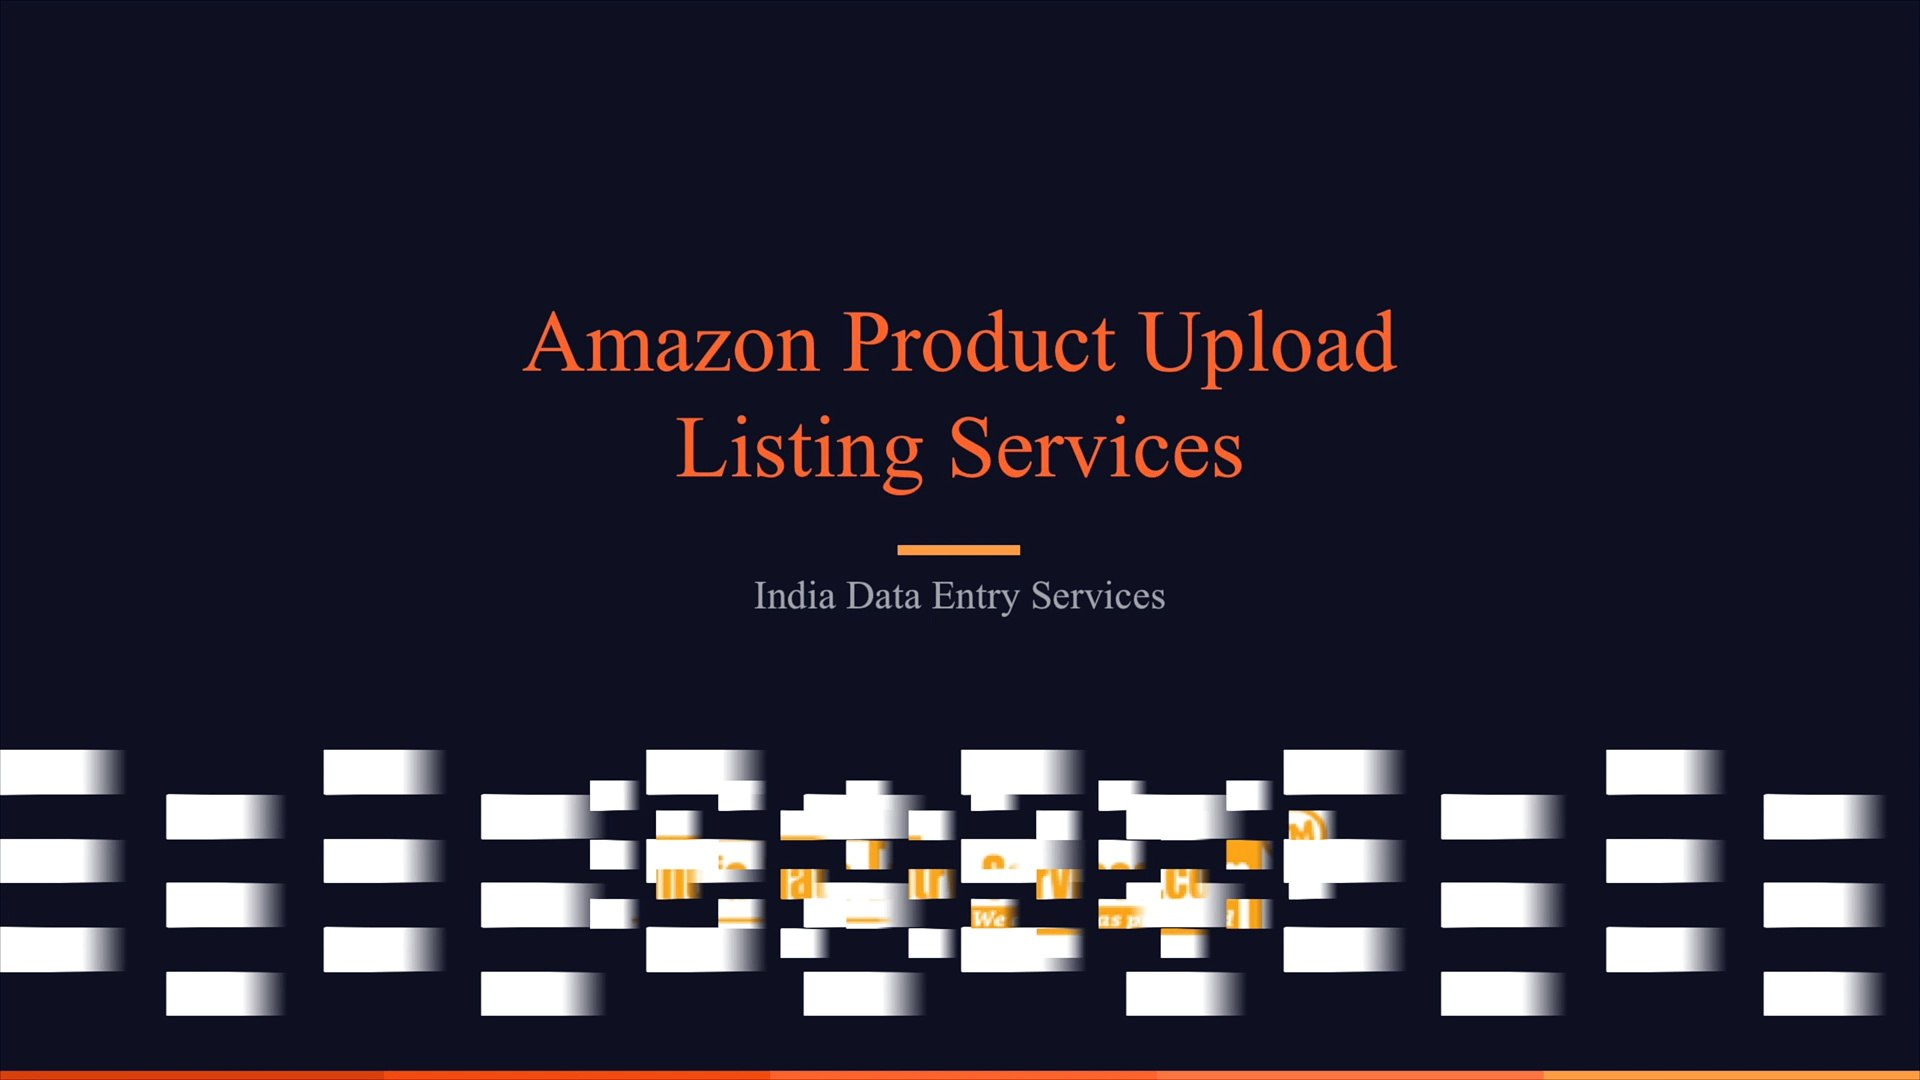 Amazon Product Upload Services, Amazon Product Listing Services, Amazon Product Data Entry Services